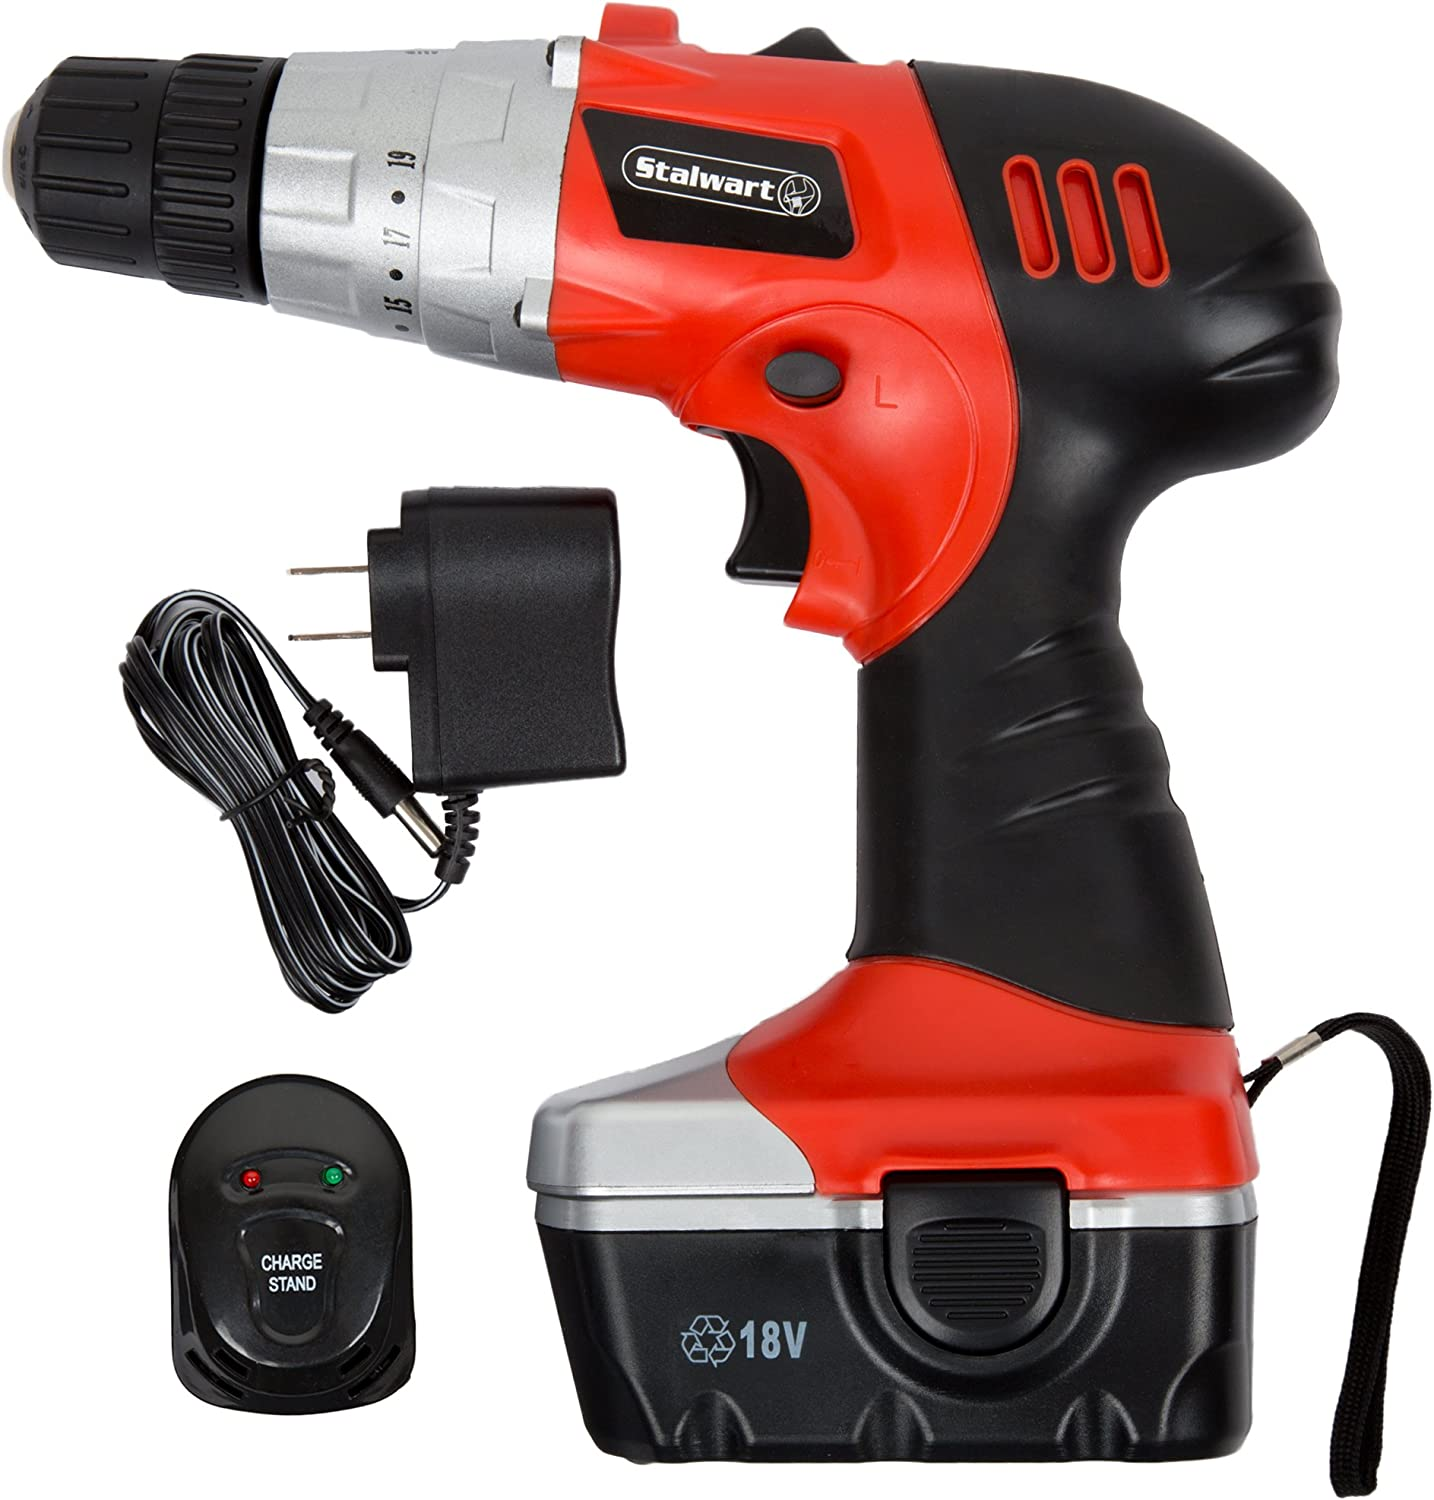 18V Cordless Drill with Rechargeable Battery, Built In LED Light, Level and Magnetic Base- Portable Power Tool with Wall Charger by Stalwart